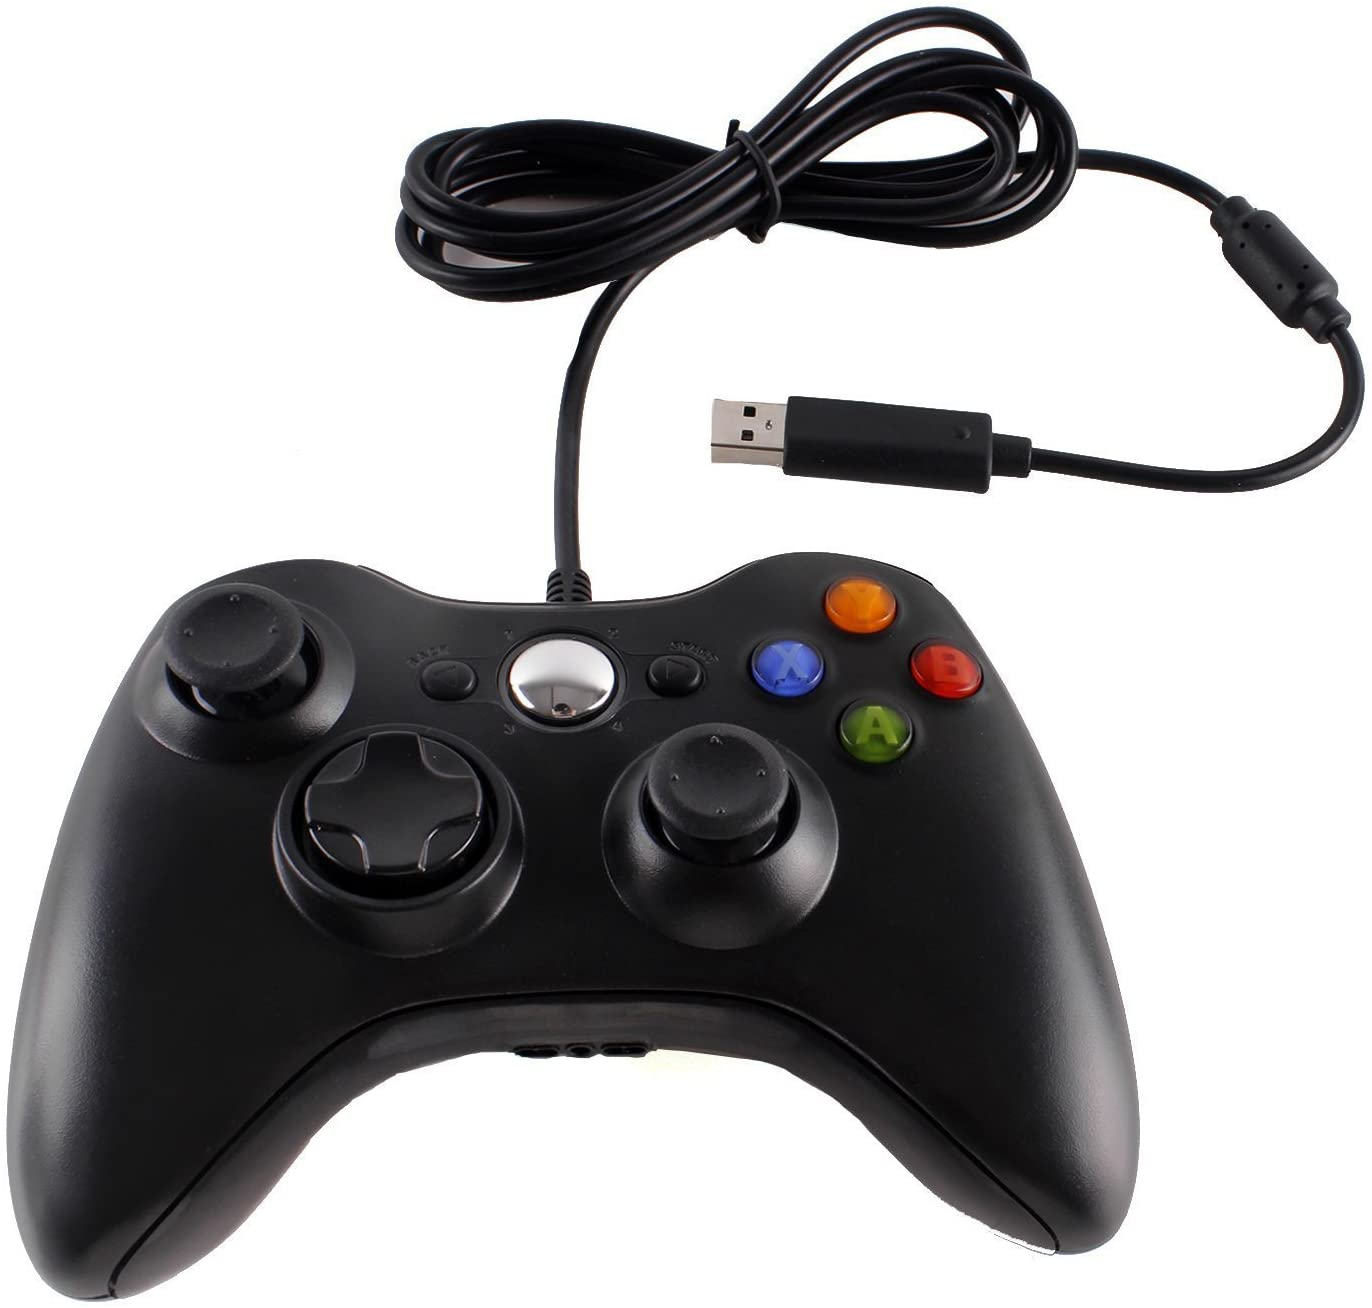 Wired USB Game Controller Gamepad Game Joystick Joypad for Microsoft Xbox 360 & Windows PC (Black): Computers & Accessories